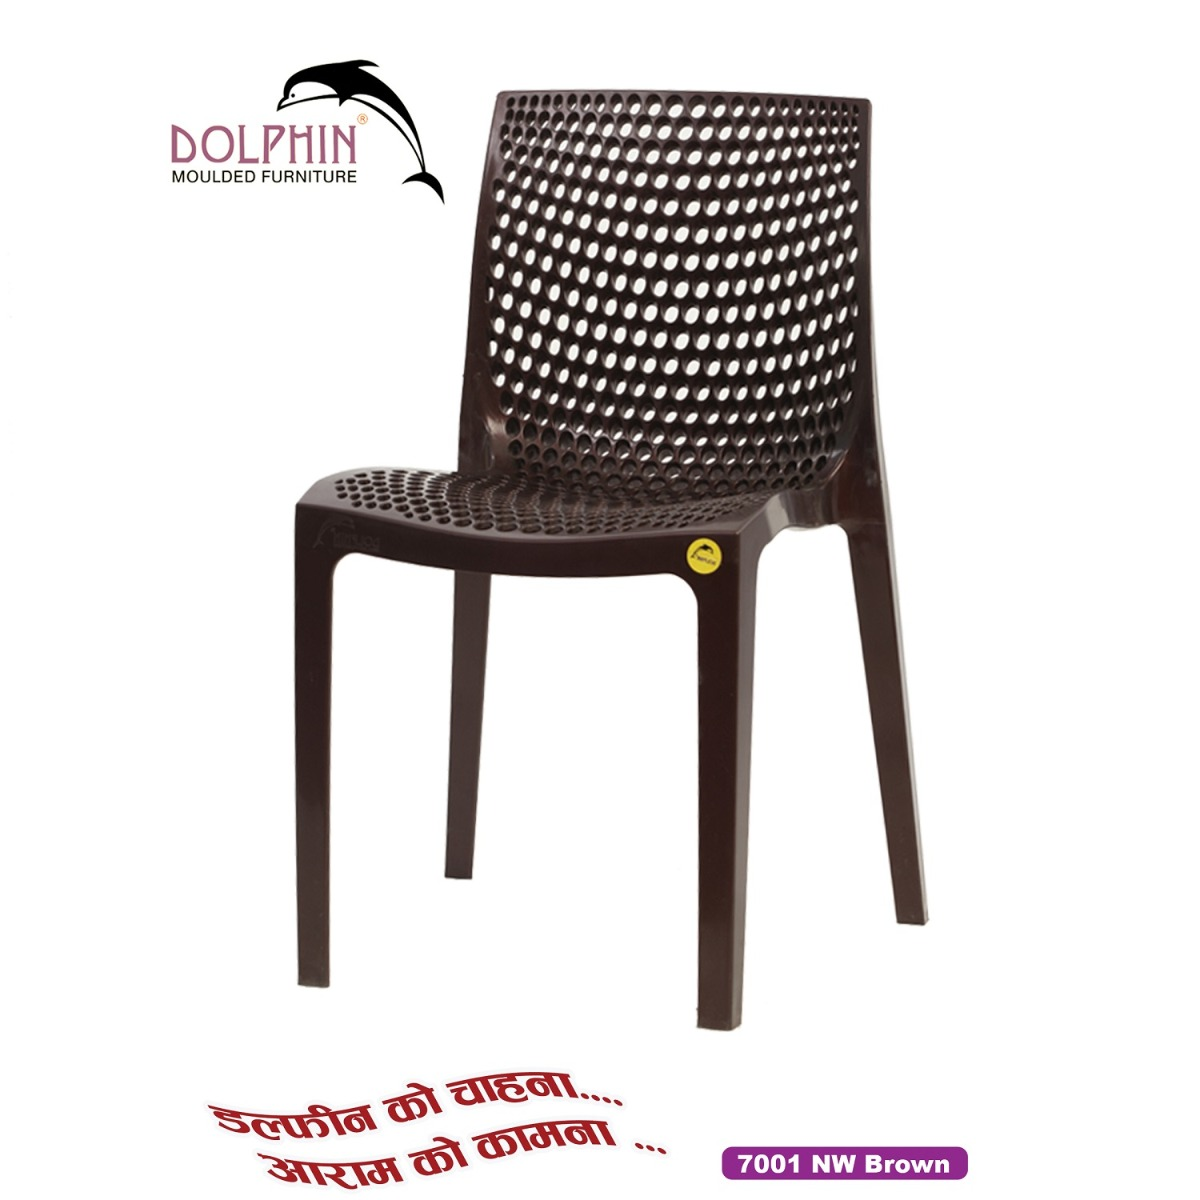 Buy Dolphin Plastic Chair Model - 7001 (Brown) And Get 1 Pirka Free